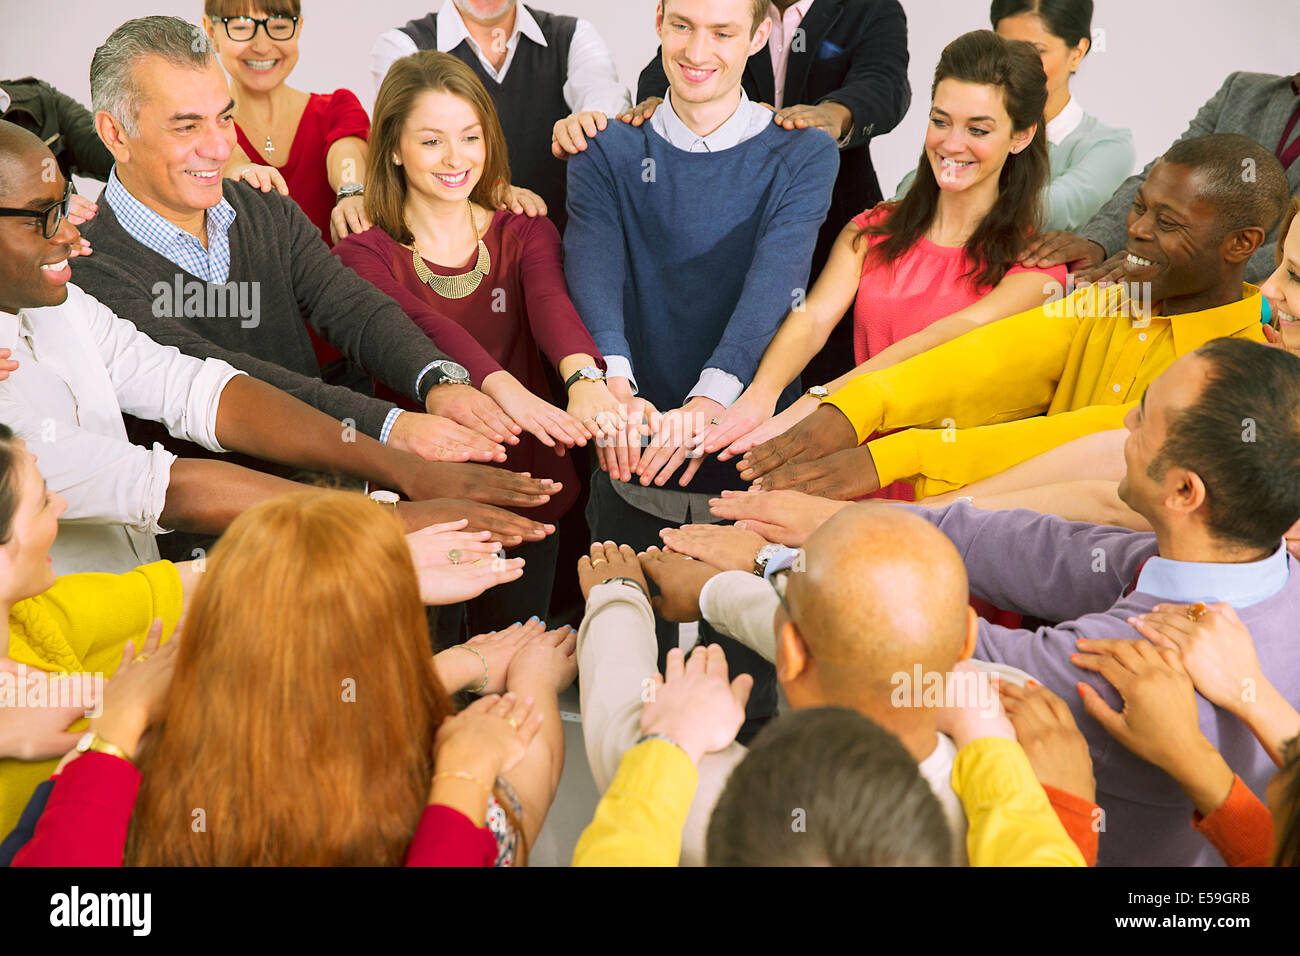 Business people with arms outstretched in huddle - Stock Image